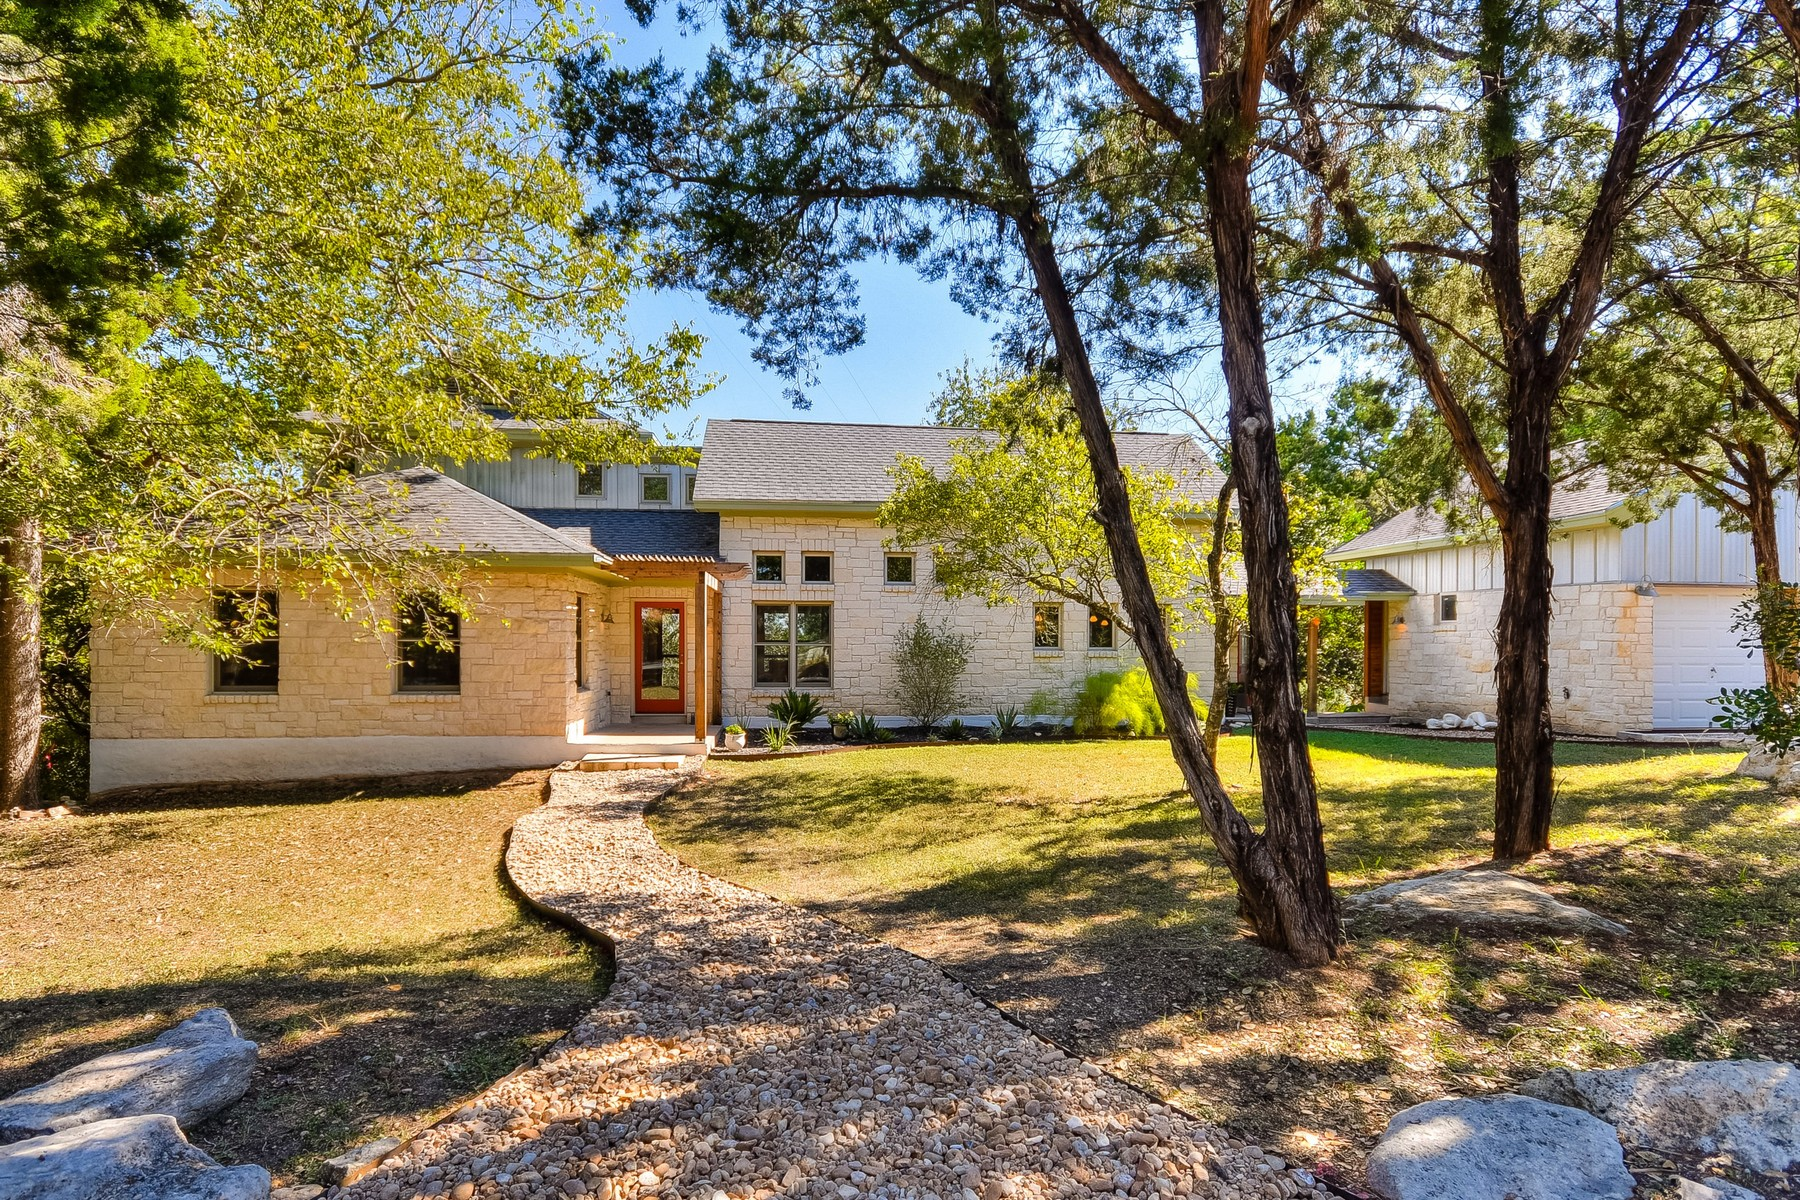 Single Family Home for Sale at Austin Musician's Home in Old Westlake 1604 The High Rd Austin, Texas 78746 United States